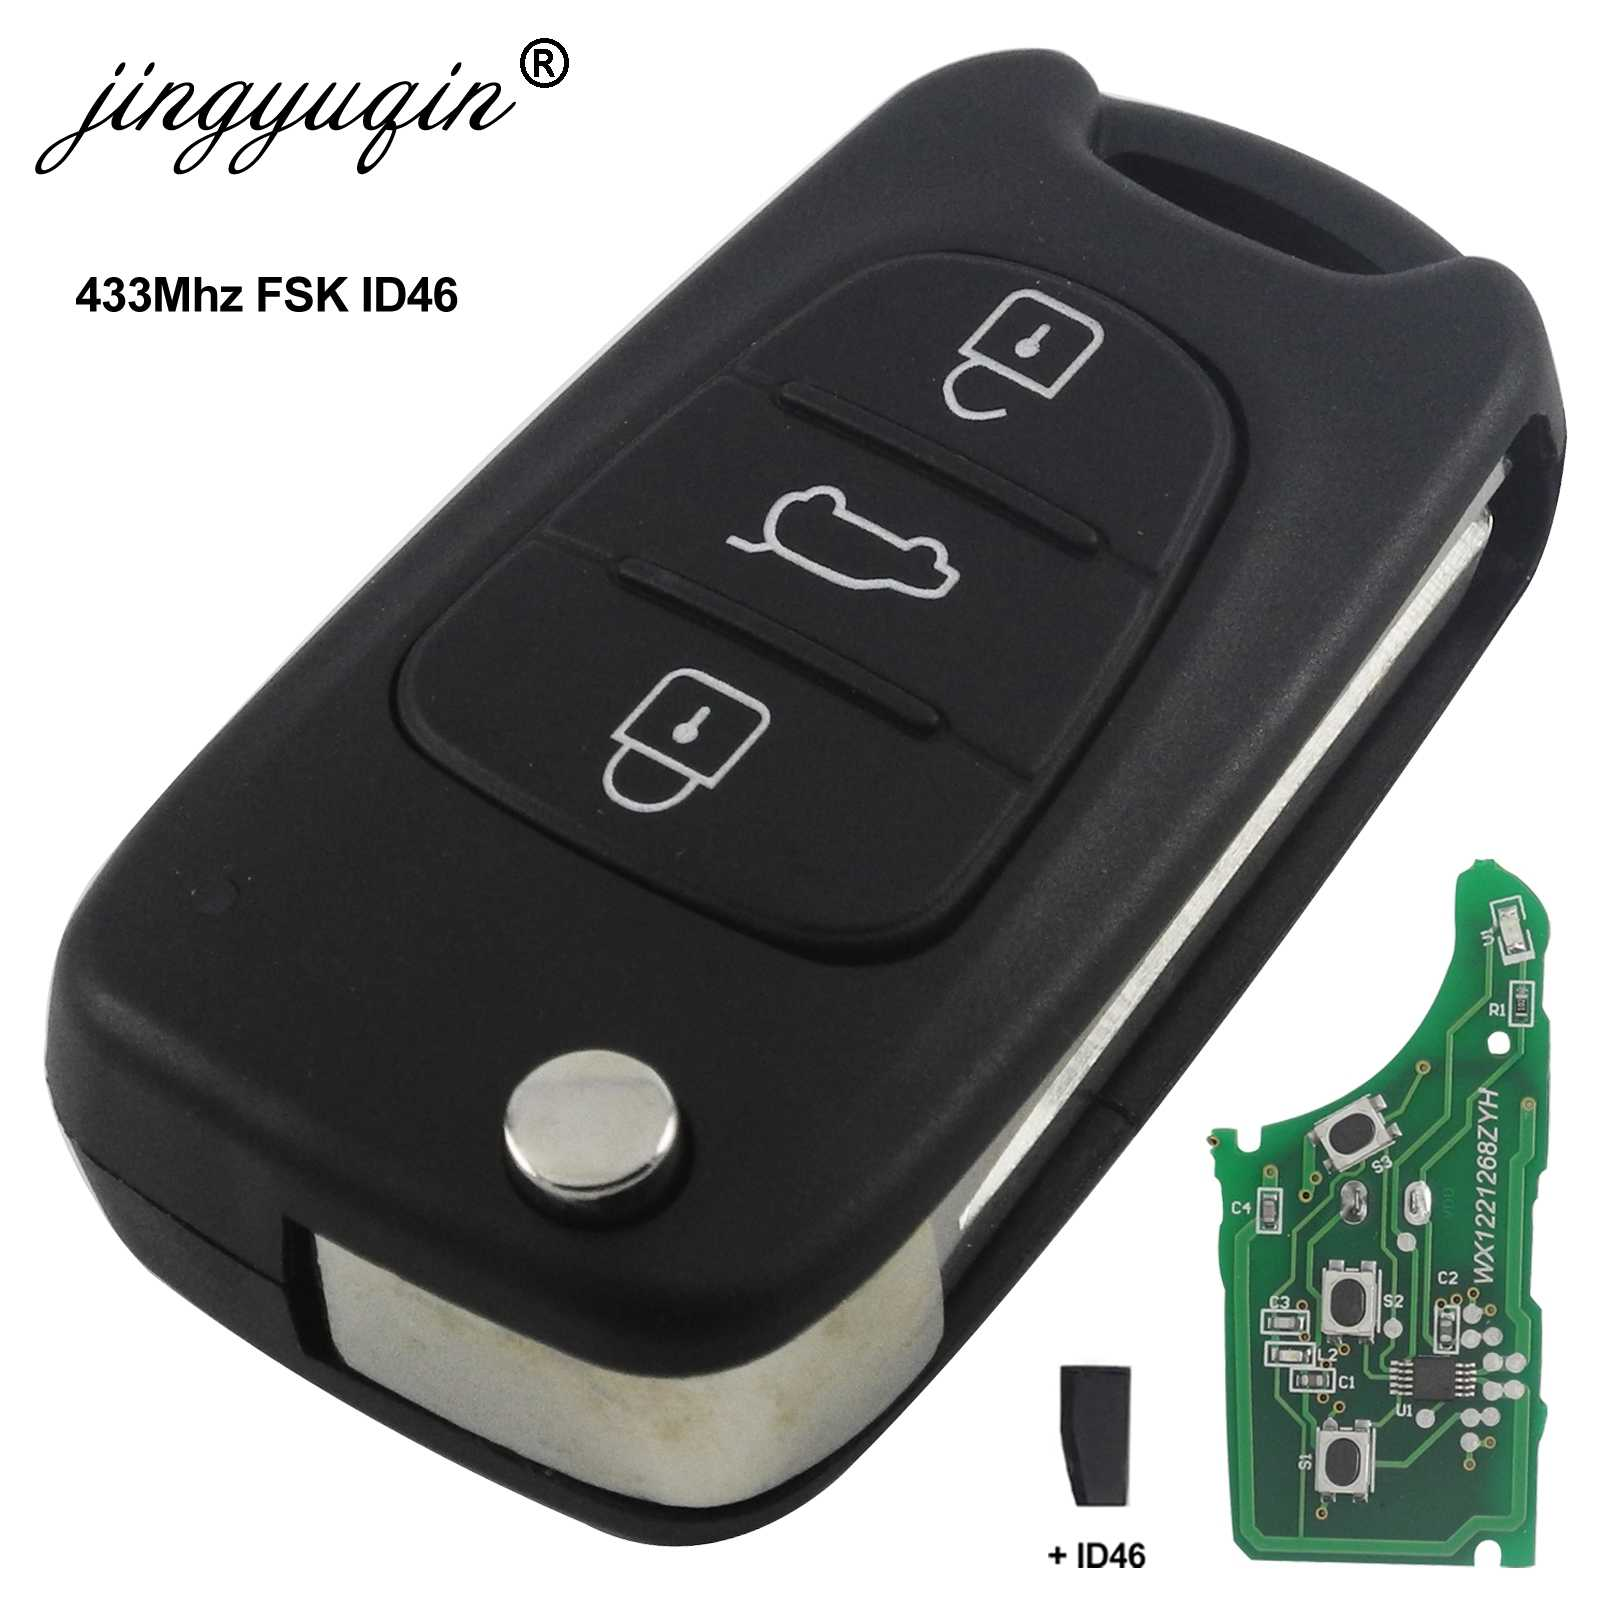 jingyuqin For Hyundai I20 I30 IX35 Avante fit Kia K2 K5 Sportage 4 33Mhz ID46 Chip 3 Buttons Flip Folding Car Remote Key Fob